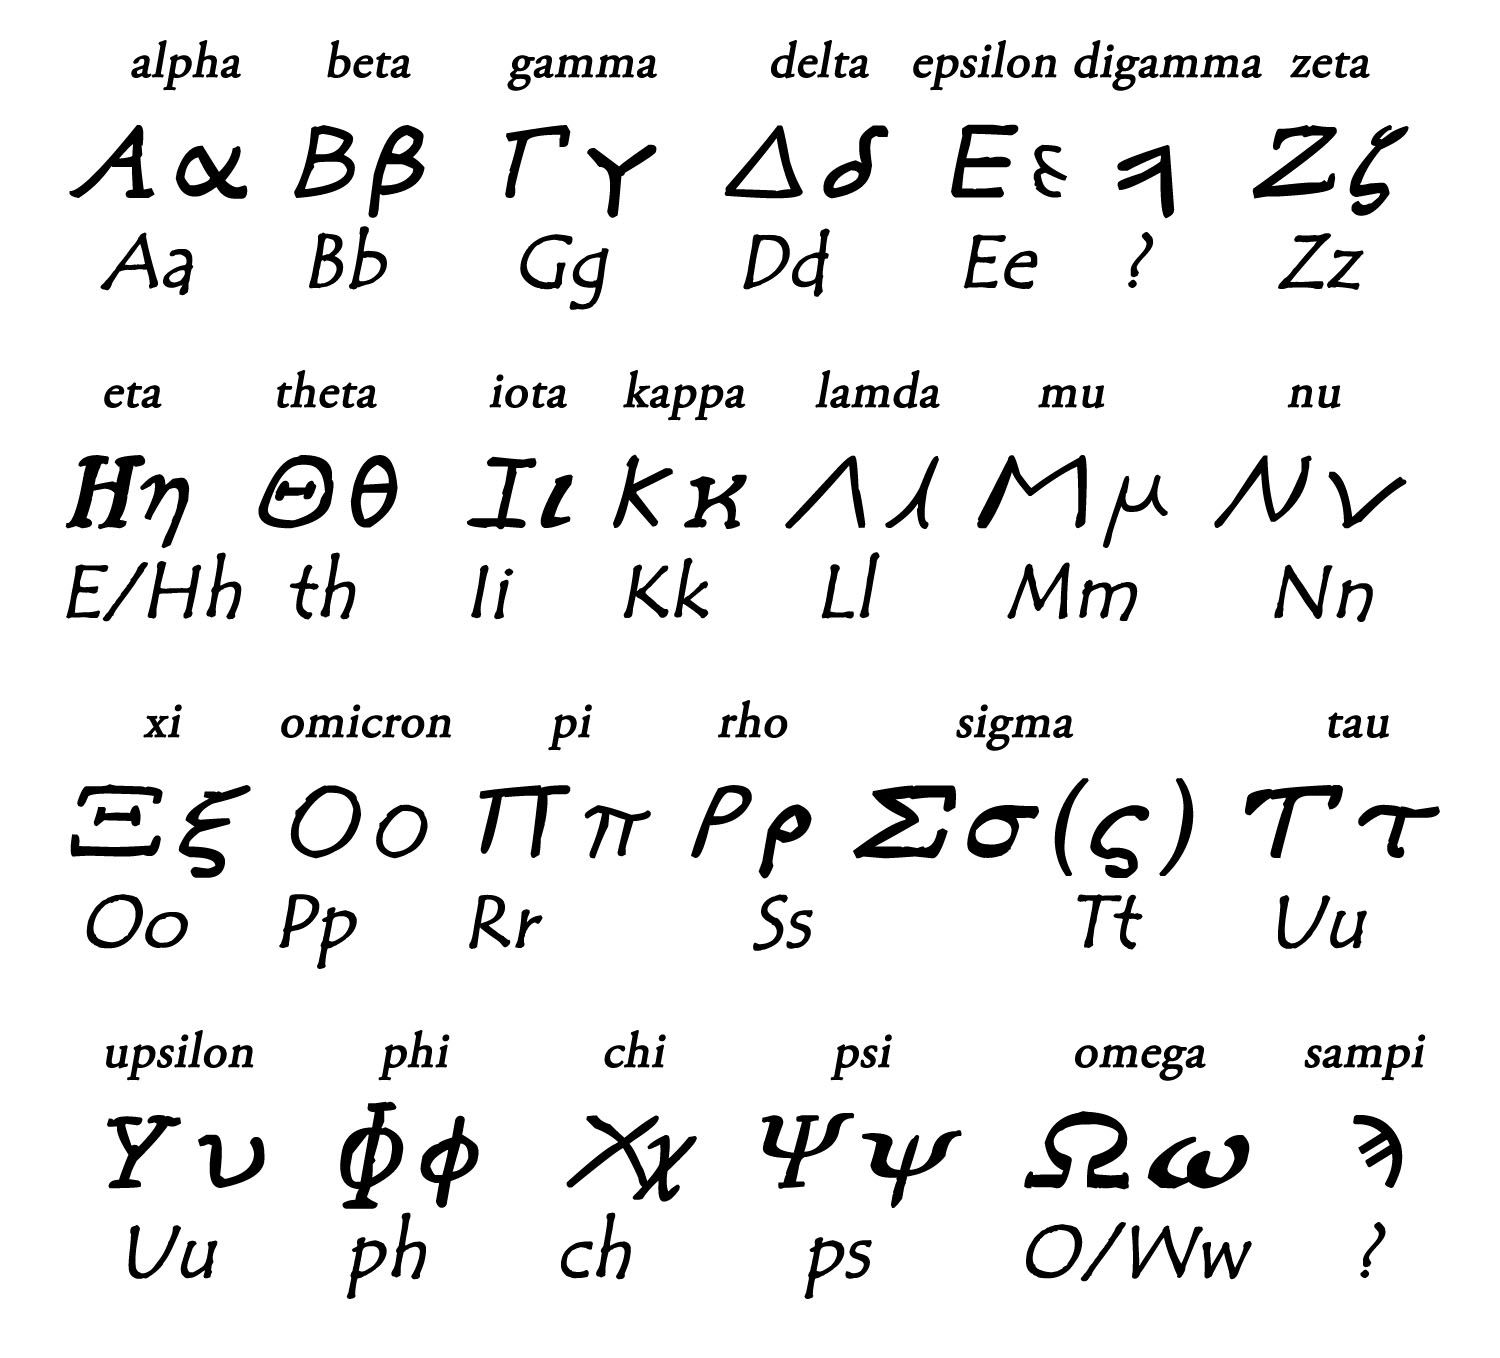 Ancient greek alphabet knowledge on the langauge of ancient ancient greek alphabet knowledge on the langauge of ancient cultures helps too buycottarizona Images